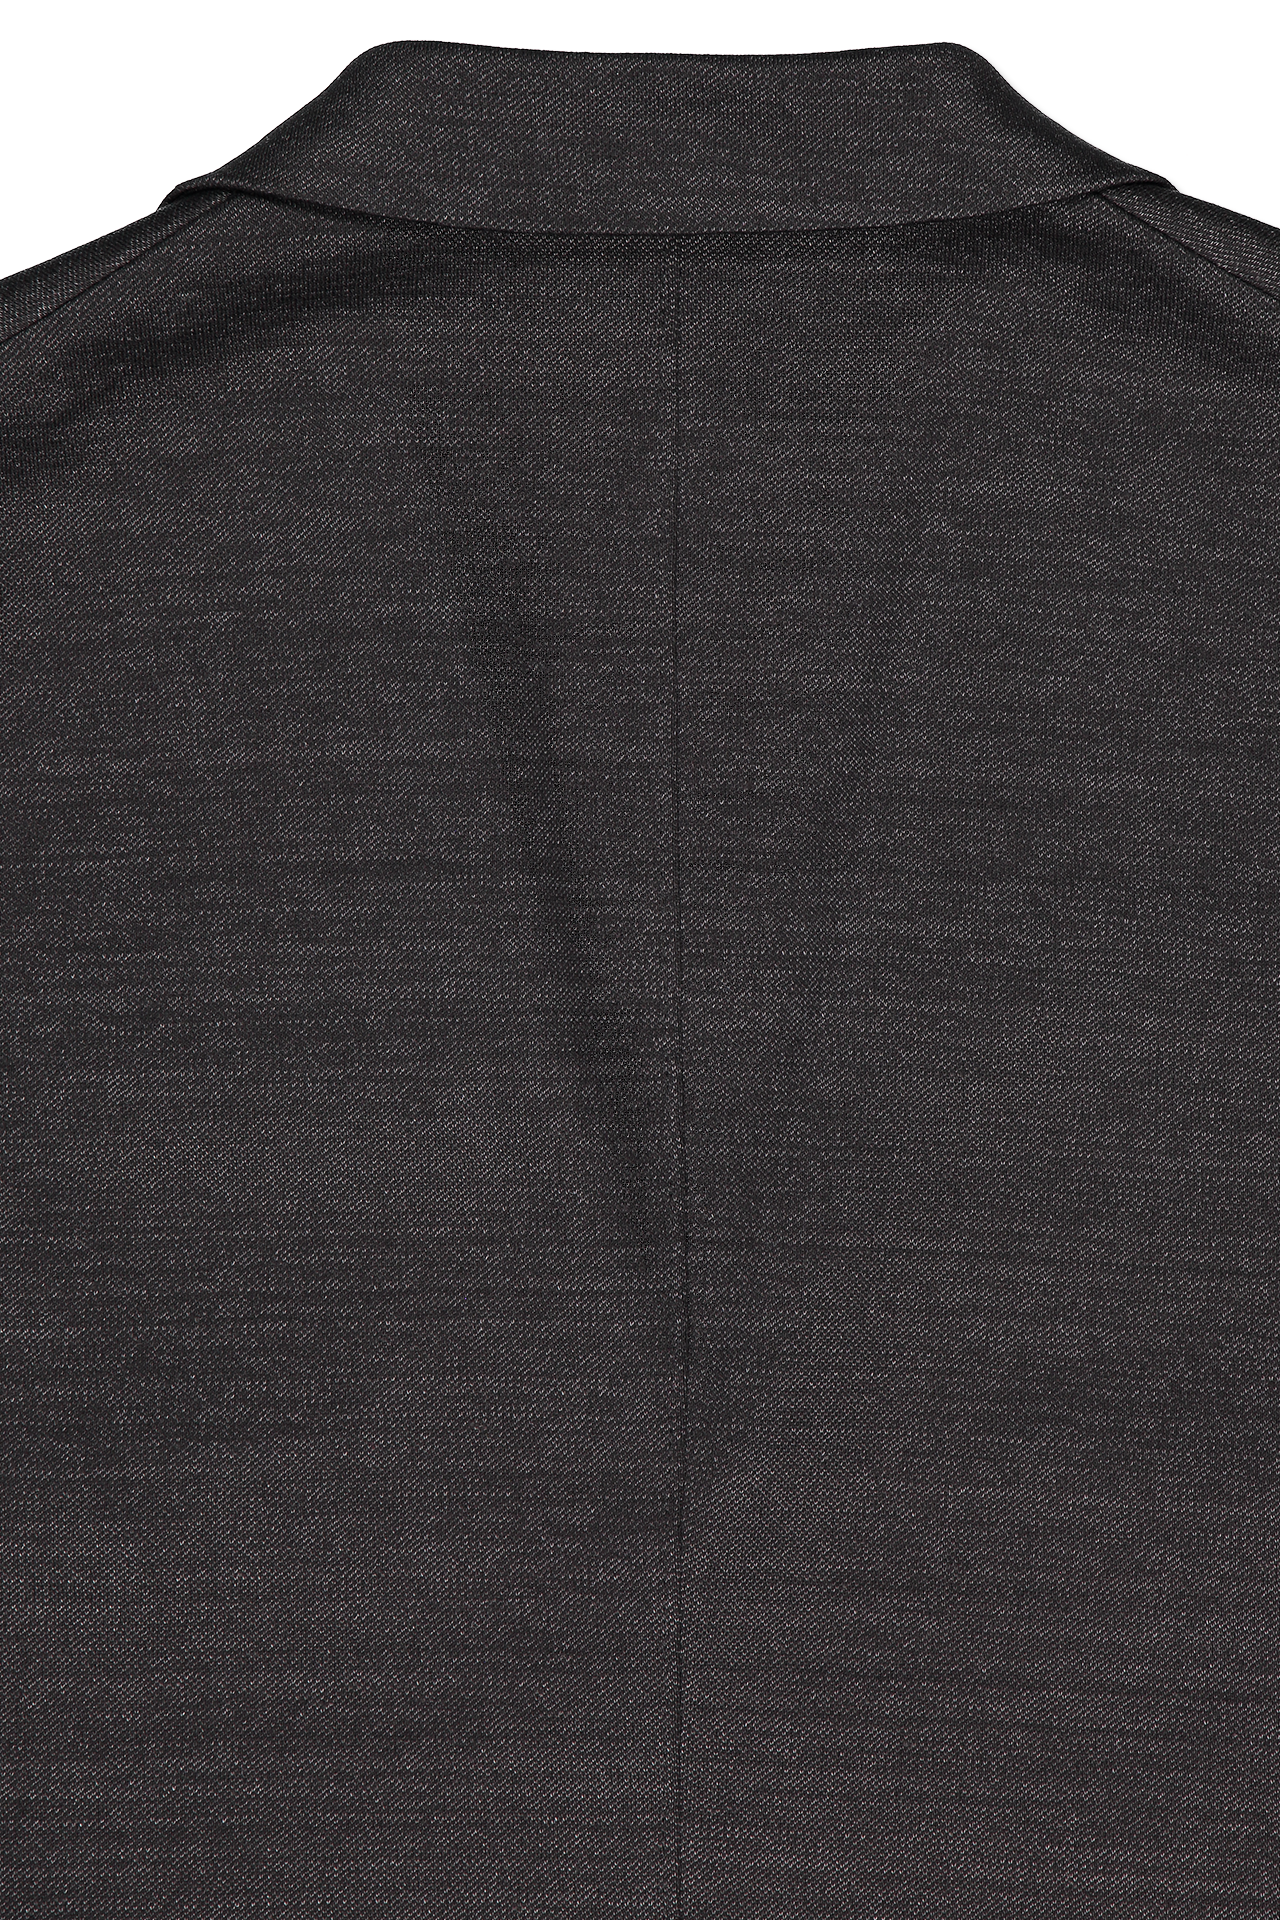 Back detail image of Harris Wharf London Men's Two Button Blazer Linen Jersey